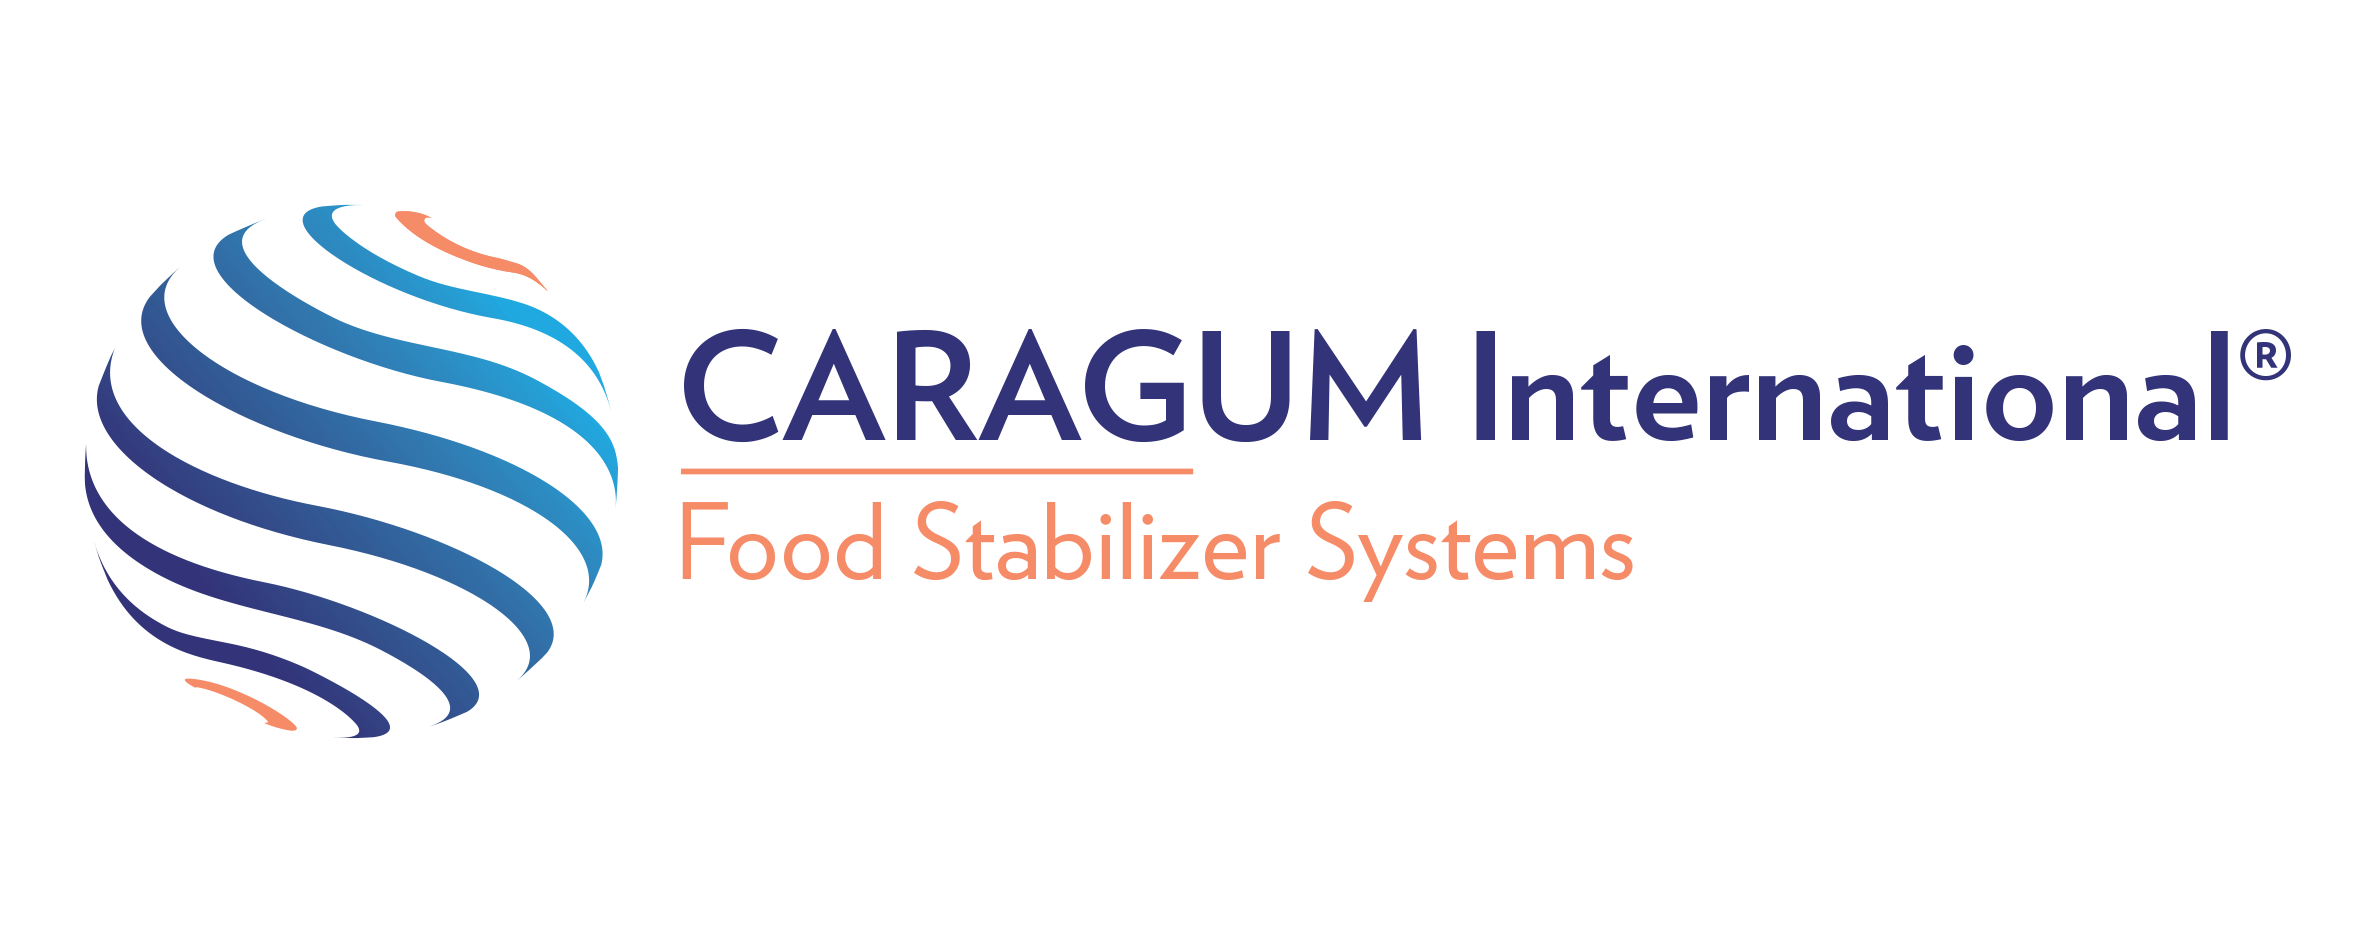 Caragum International - food stabilizers systems